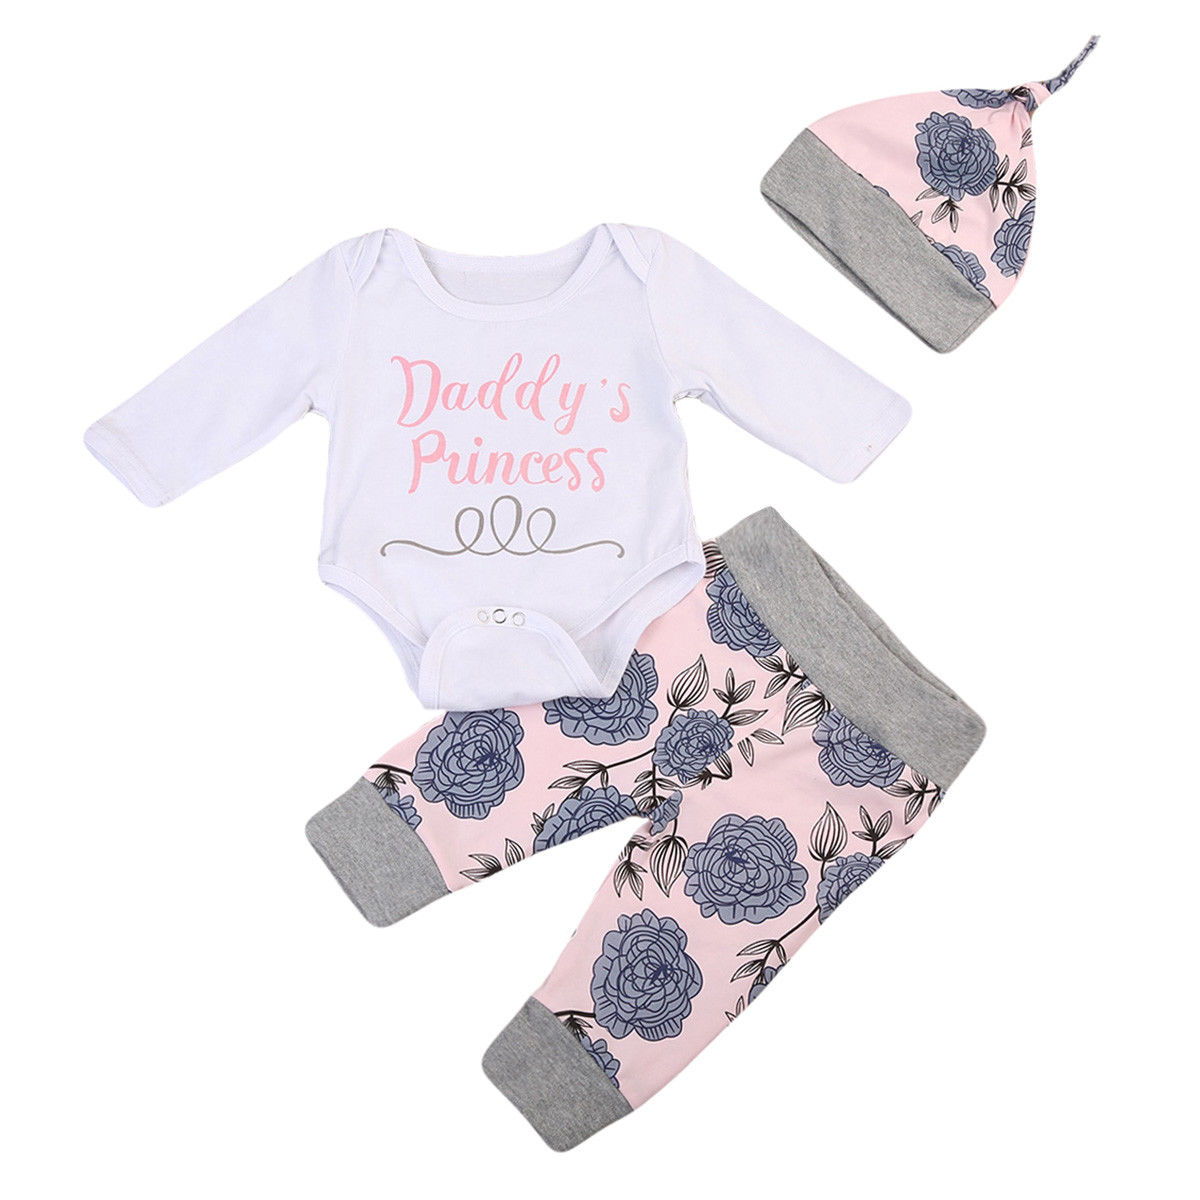 2017 New Brand Newborn Infant Toddler Baby Girl Outfits Clothes Set Bodysuit Pants Leggings Hat 3Pcs Set Girl Baby Lovely Cloth baby boy cotton tops bodysuit infant pants toddler cartoon legging hat outfits newborn kids clothes set